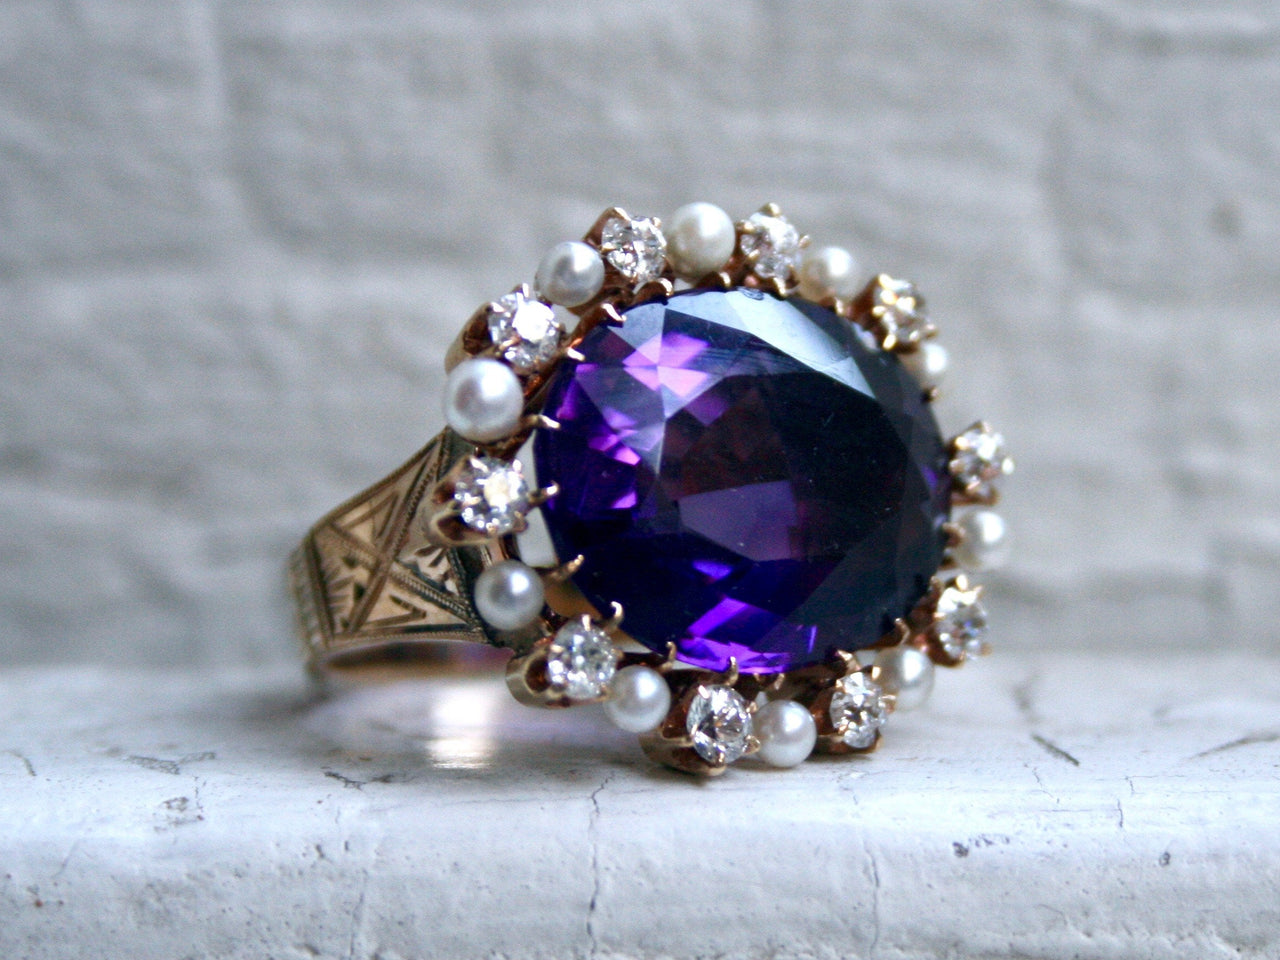 Outstanding Antique 14K Yellow Gold Amethyst Ring with Diamond and Pearl Halo - 15.70ct.